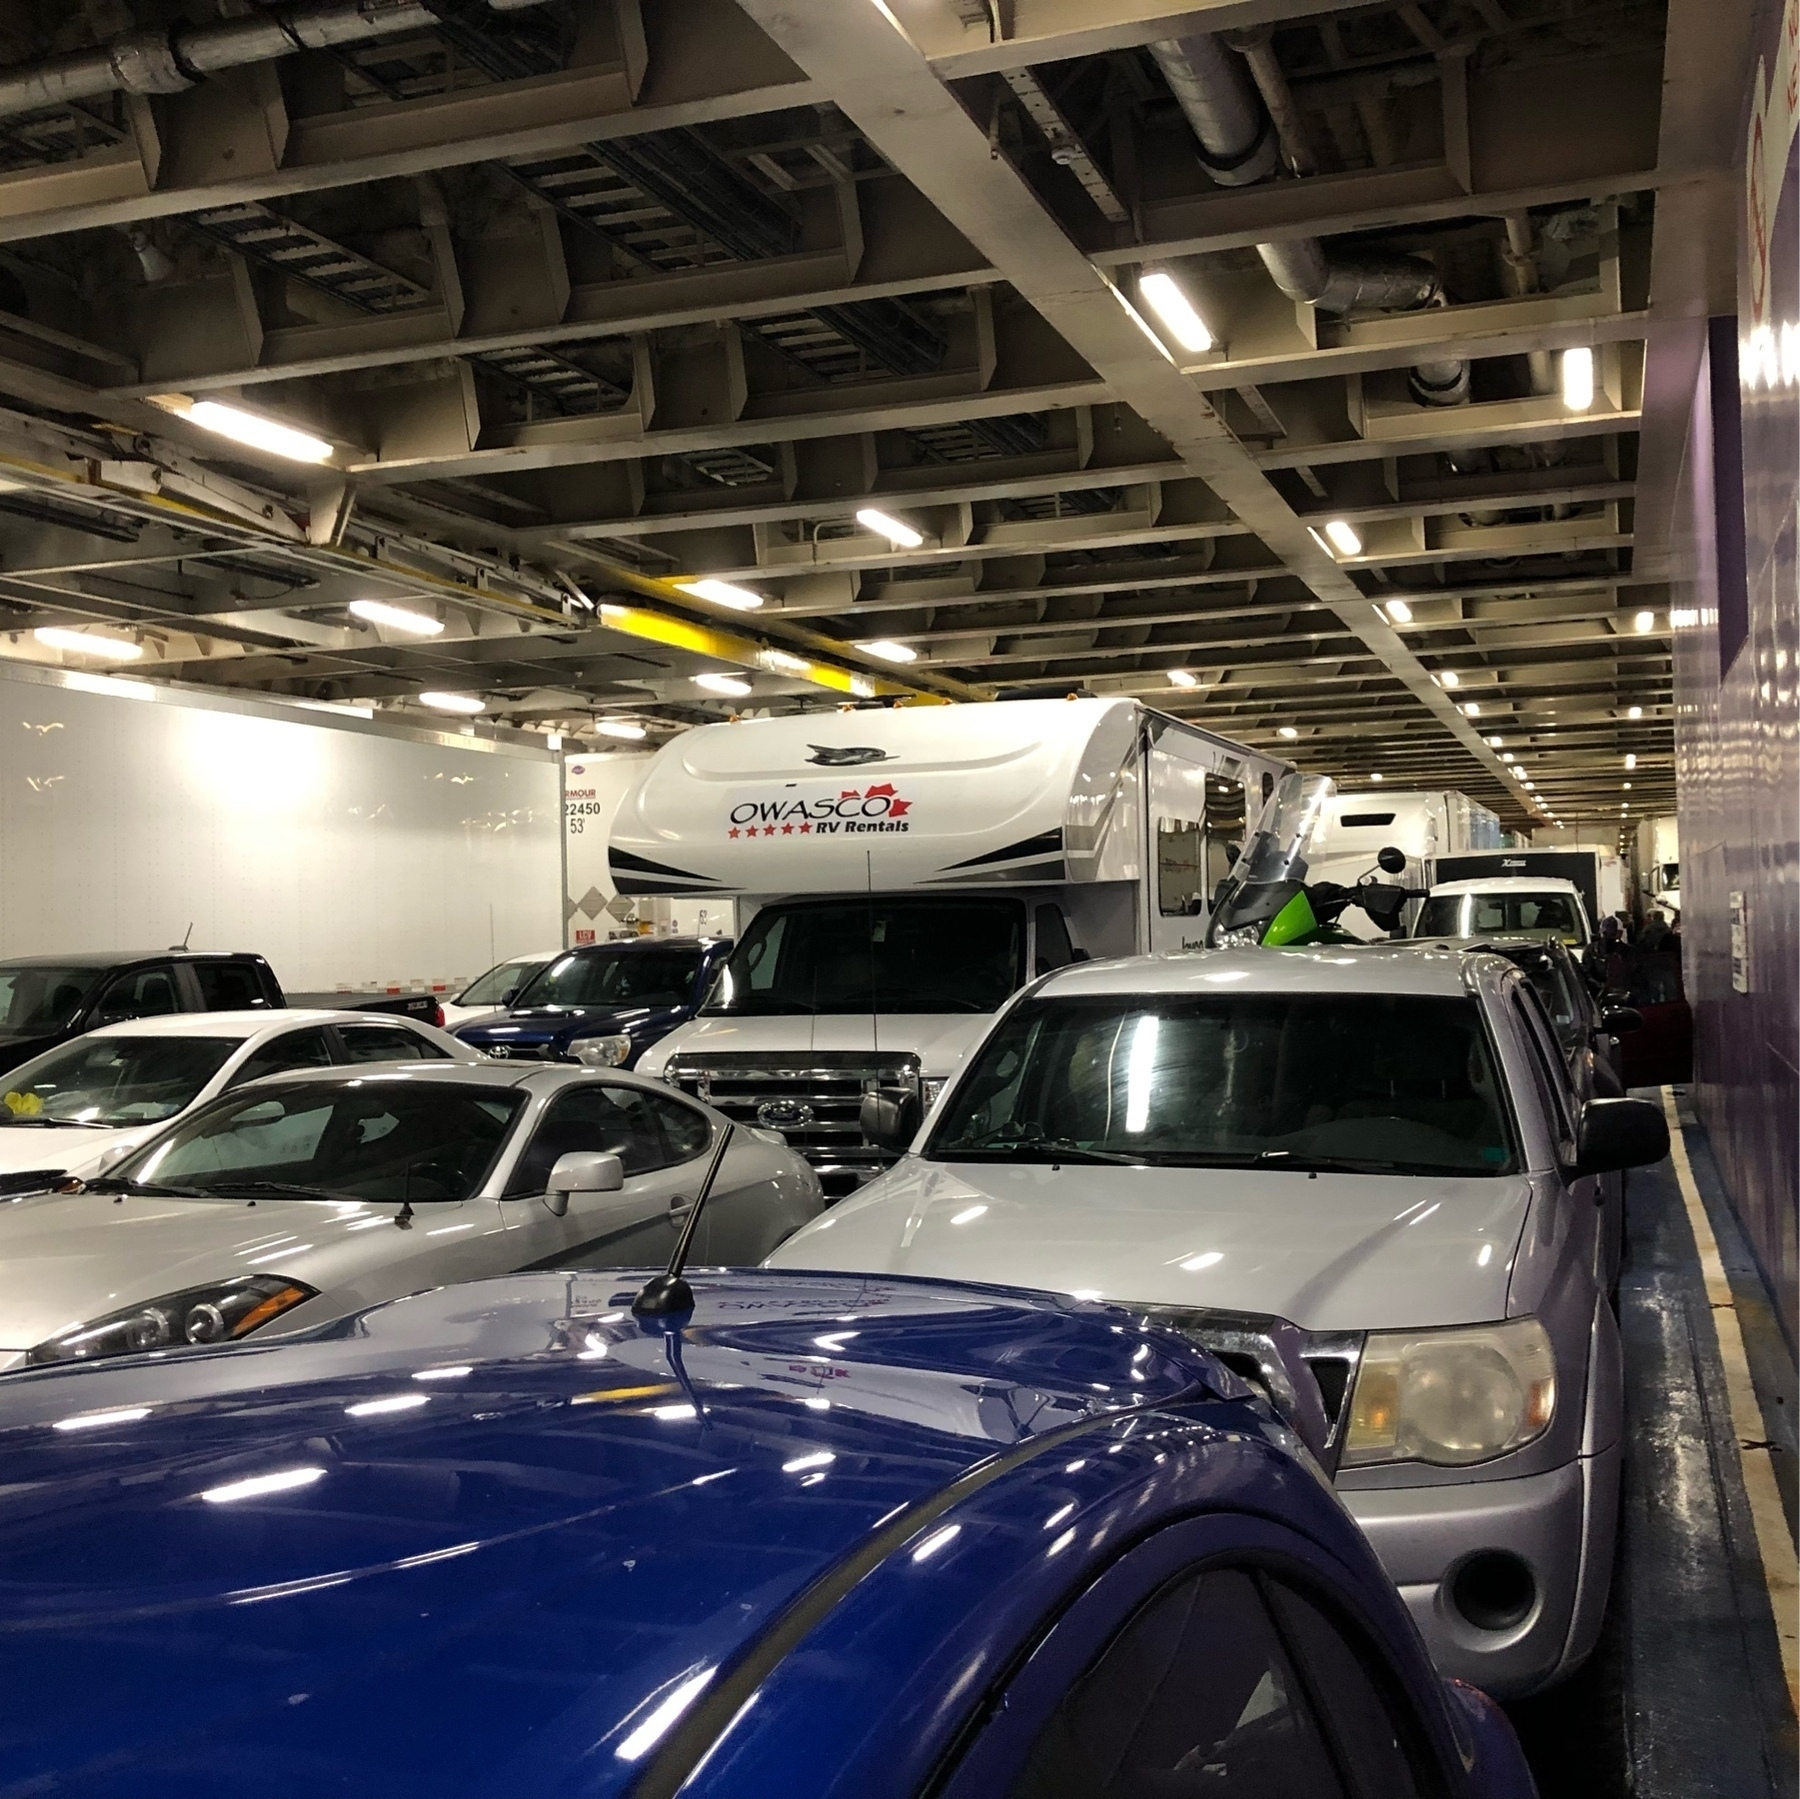 vehicles parked closely inside a ferry